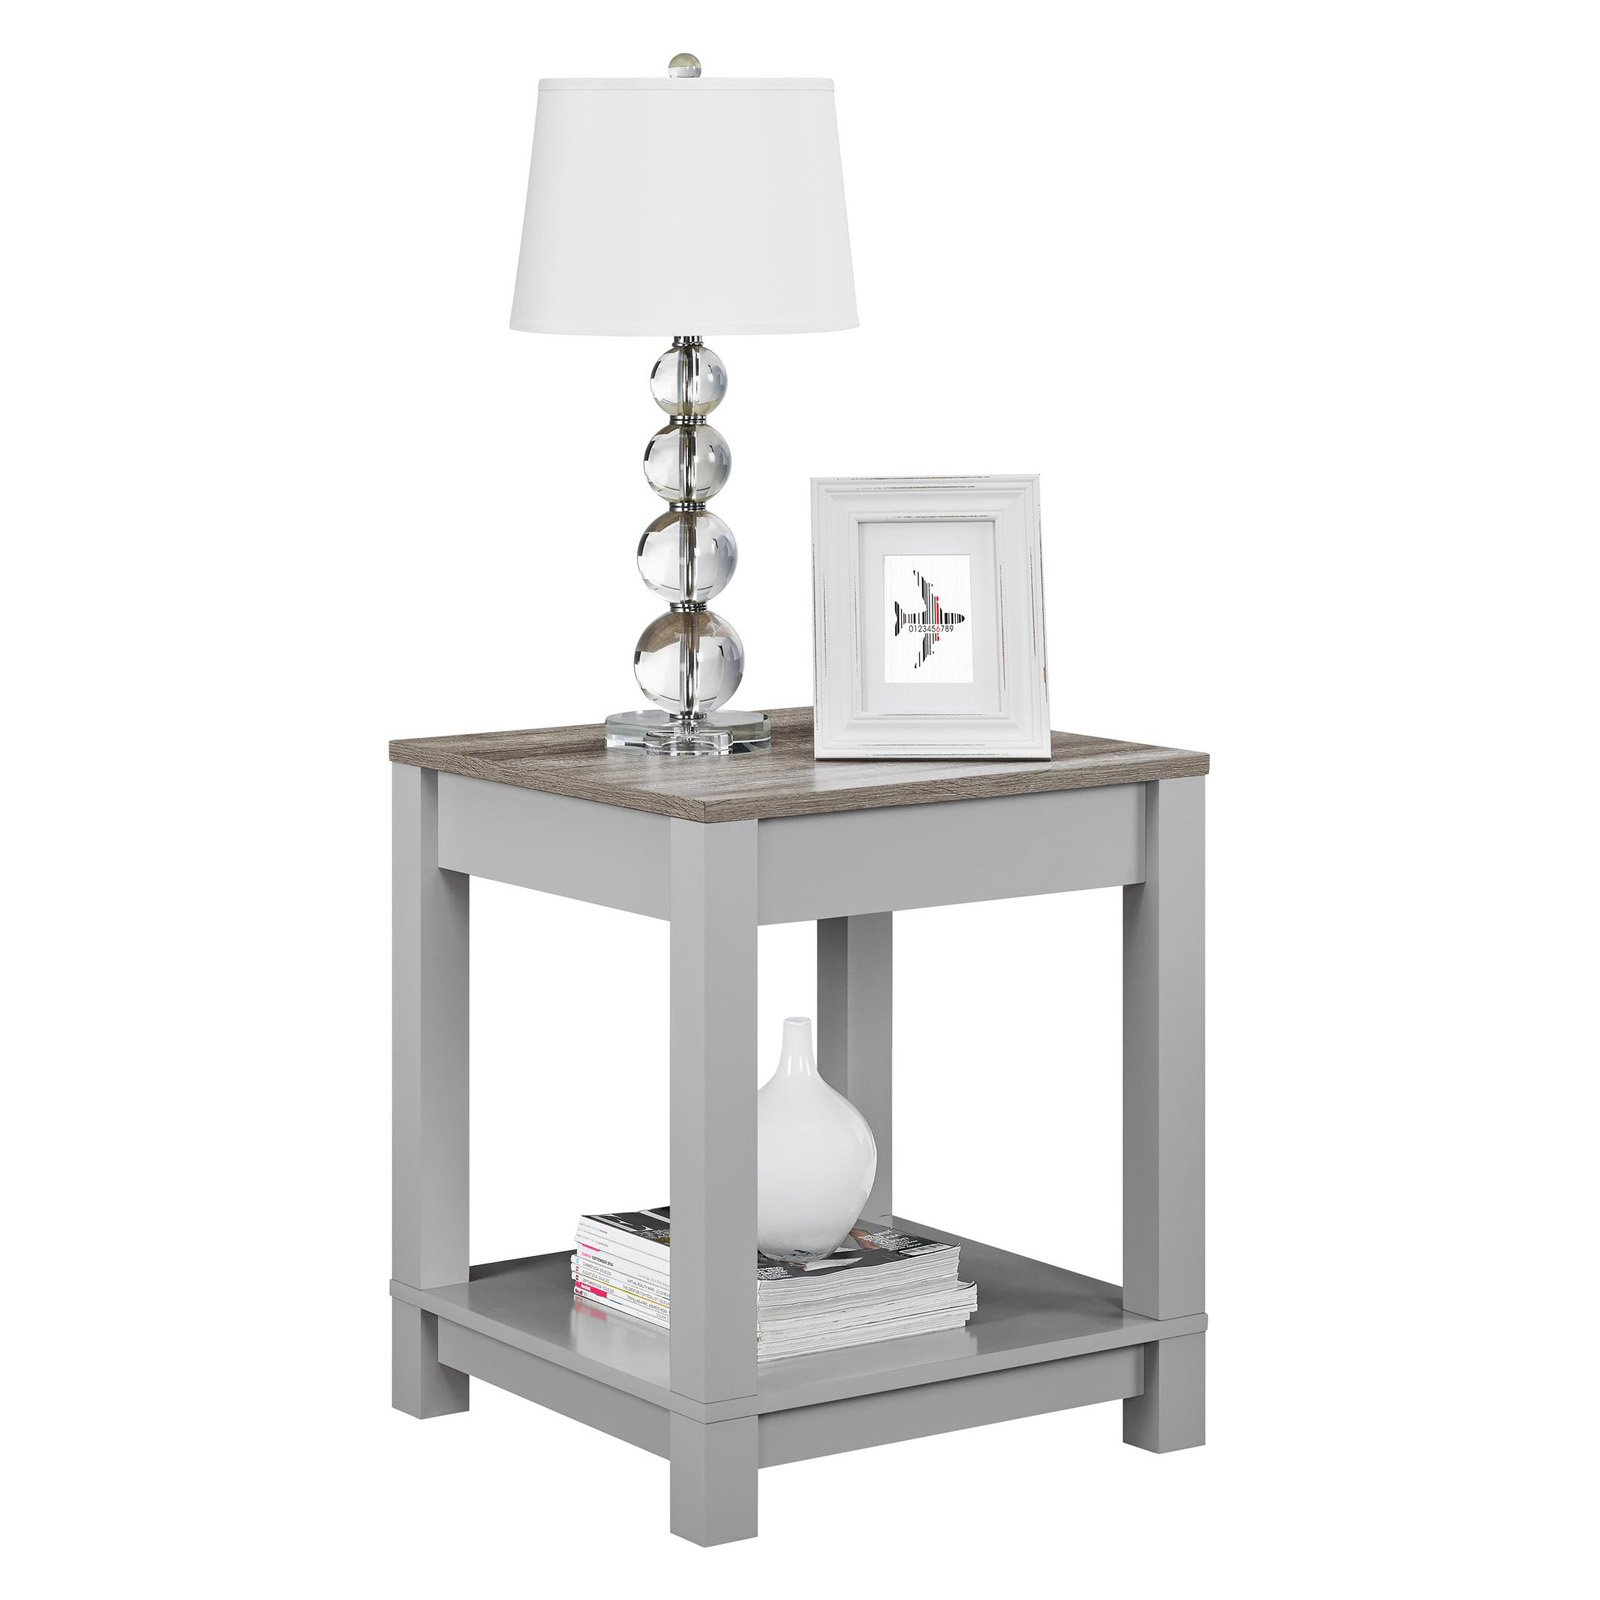 marble top kitchen table the terrific awesome mainstays nightstand better homes and gardens langley bay end multiple colors dark gray oak small short round dining salvaged wood